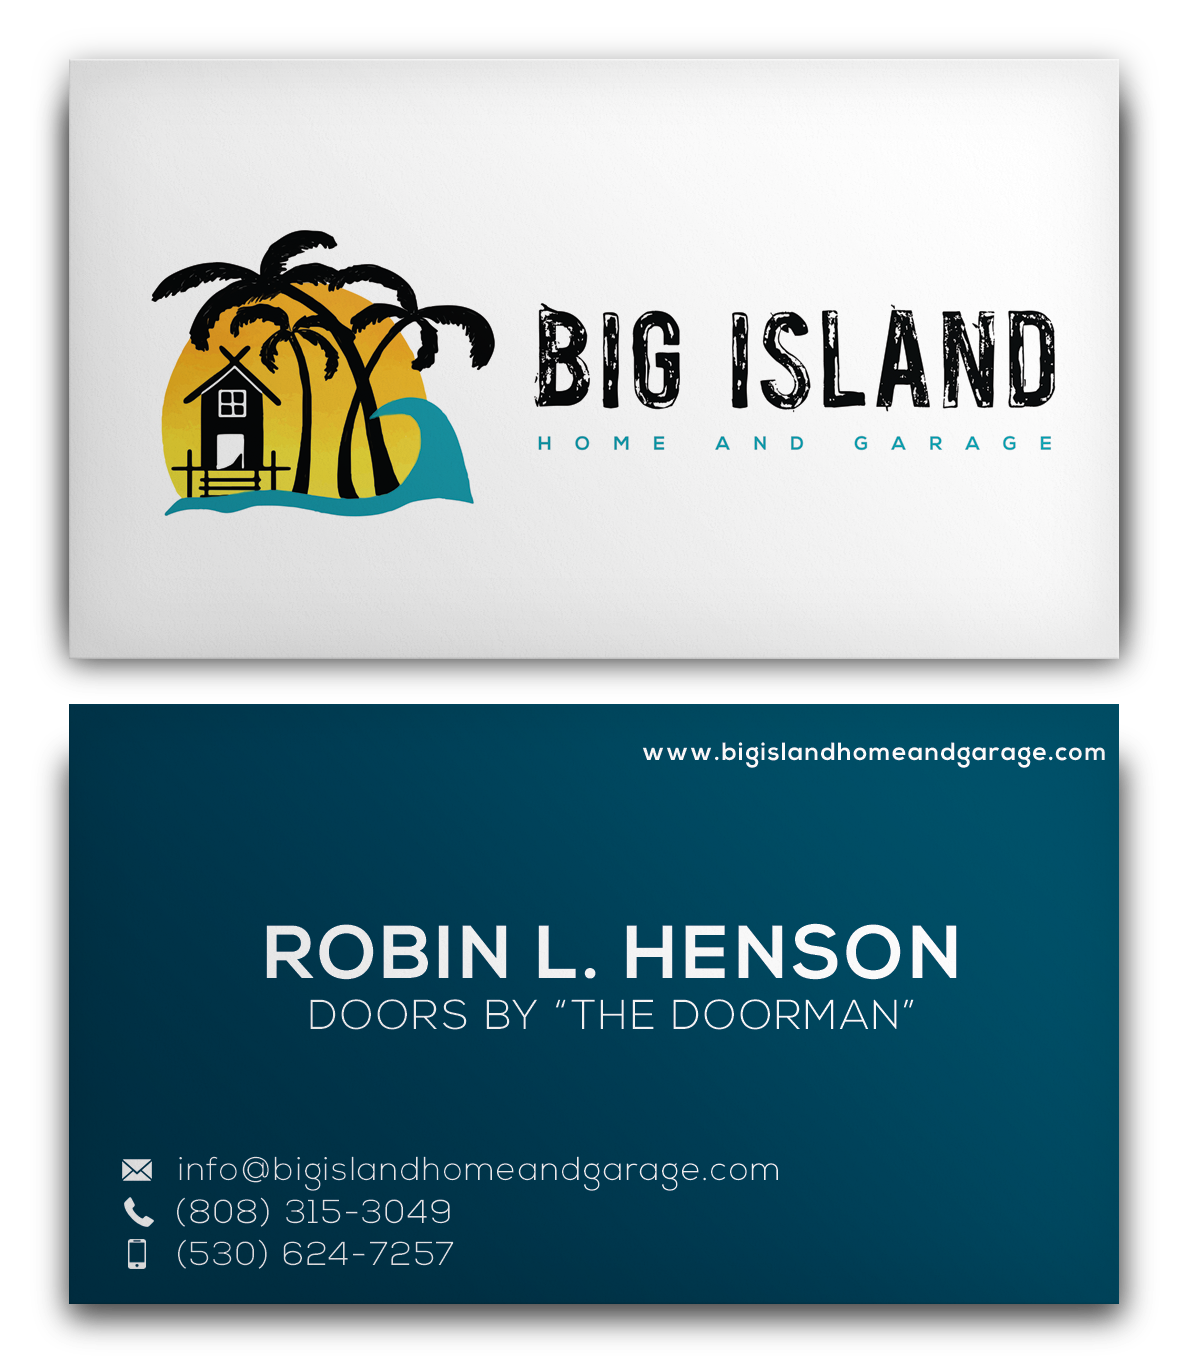 Design and print business cards at home online print shop printing services for business - Design and print business cards at home ...